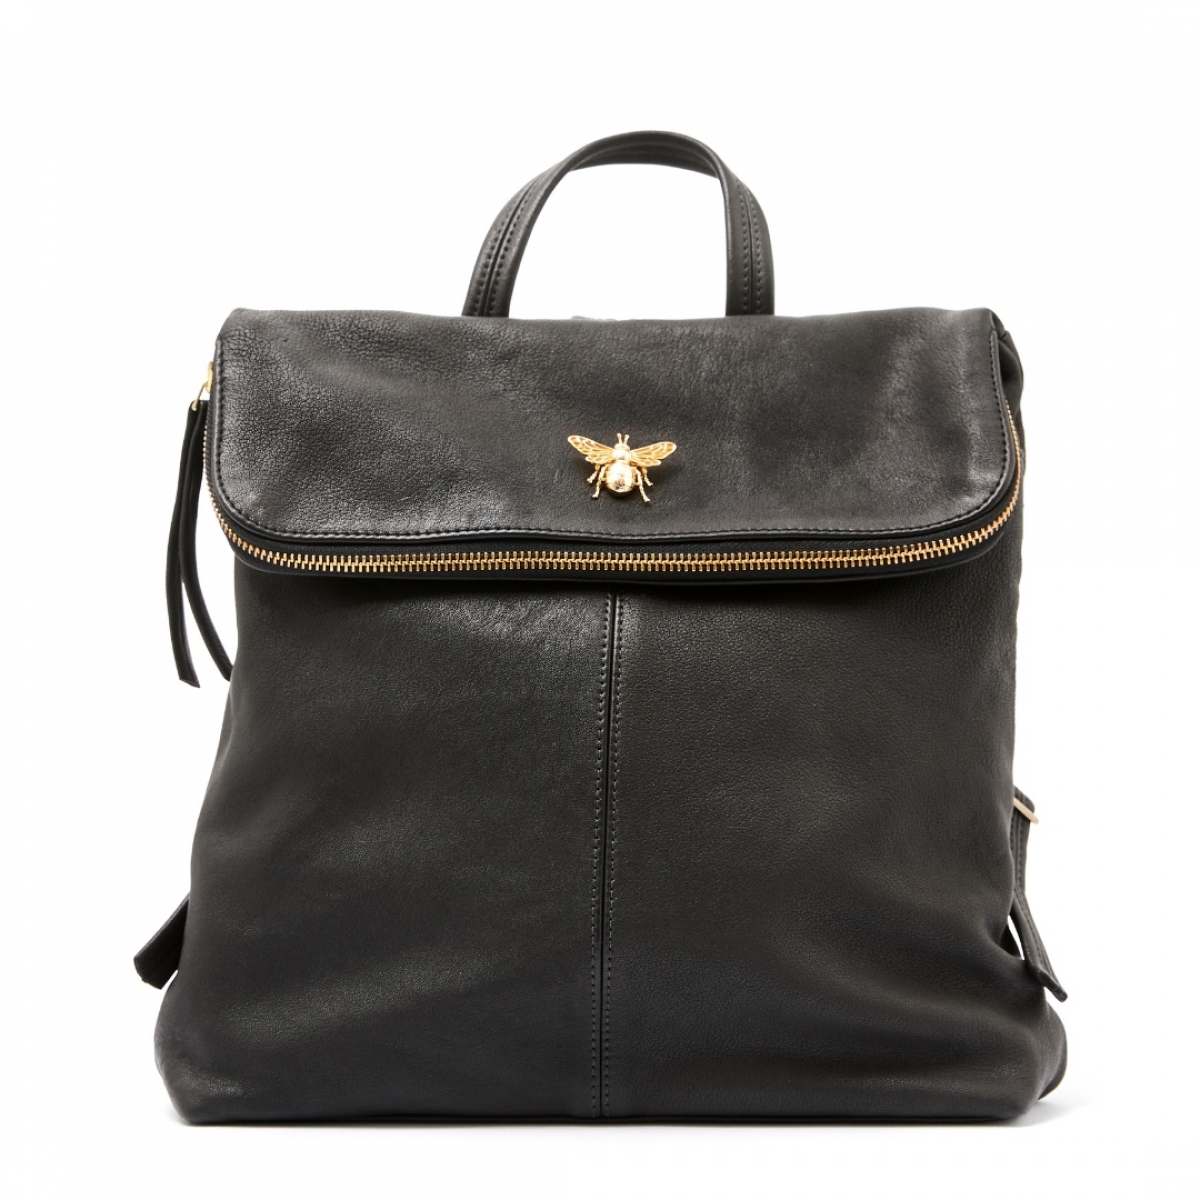 The Queen Bee Backpack - Black